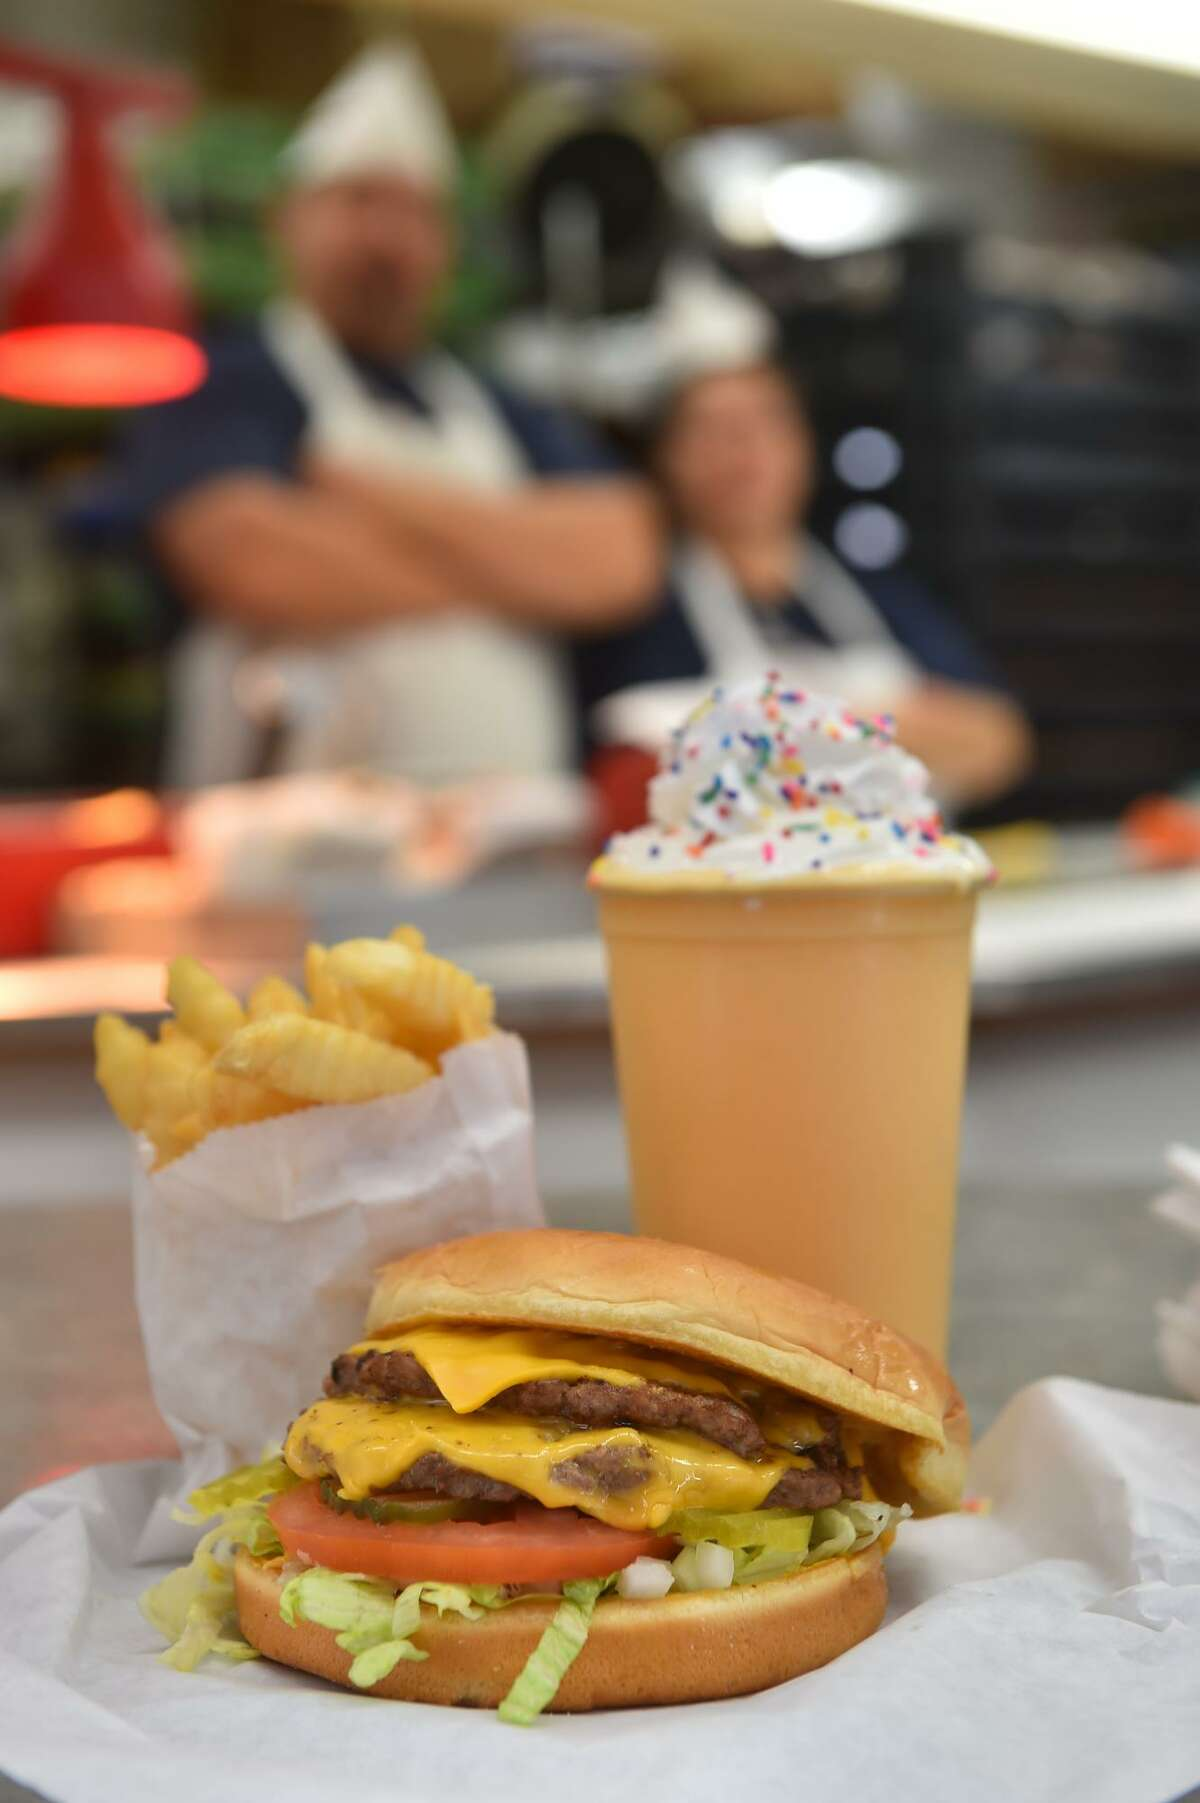 Burger, fries and a shake from Burger Boy.